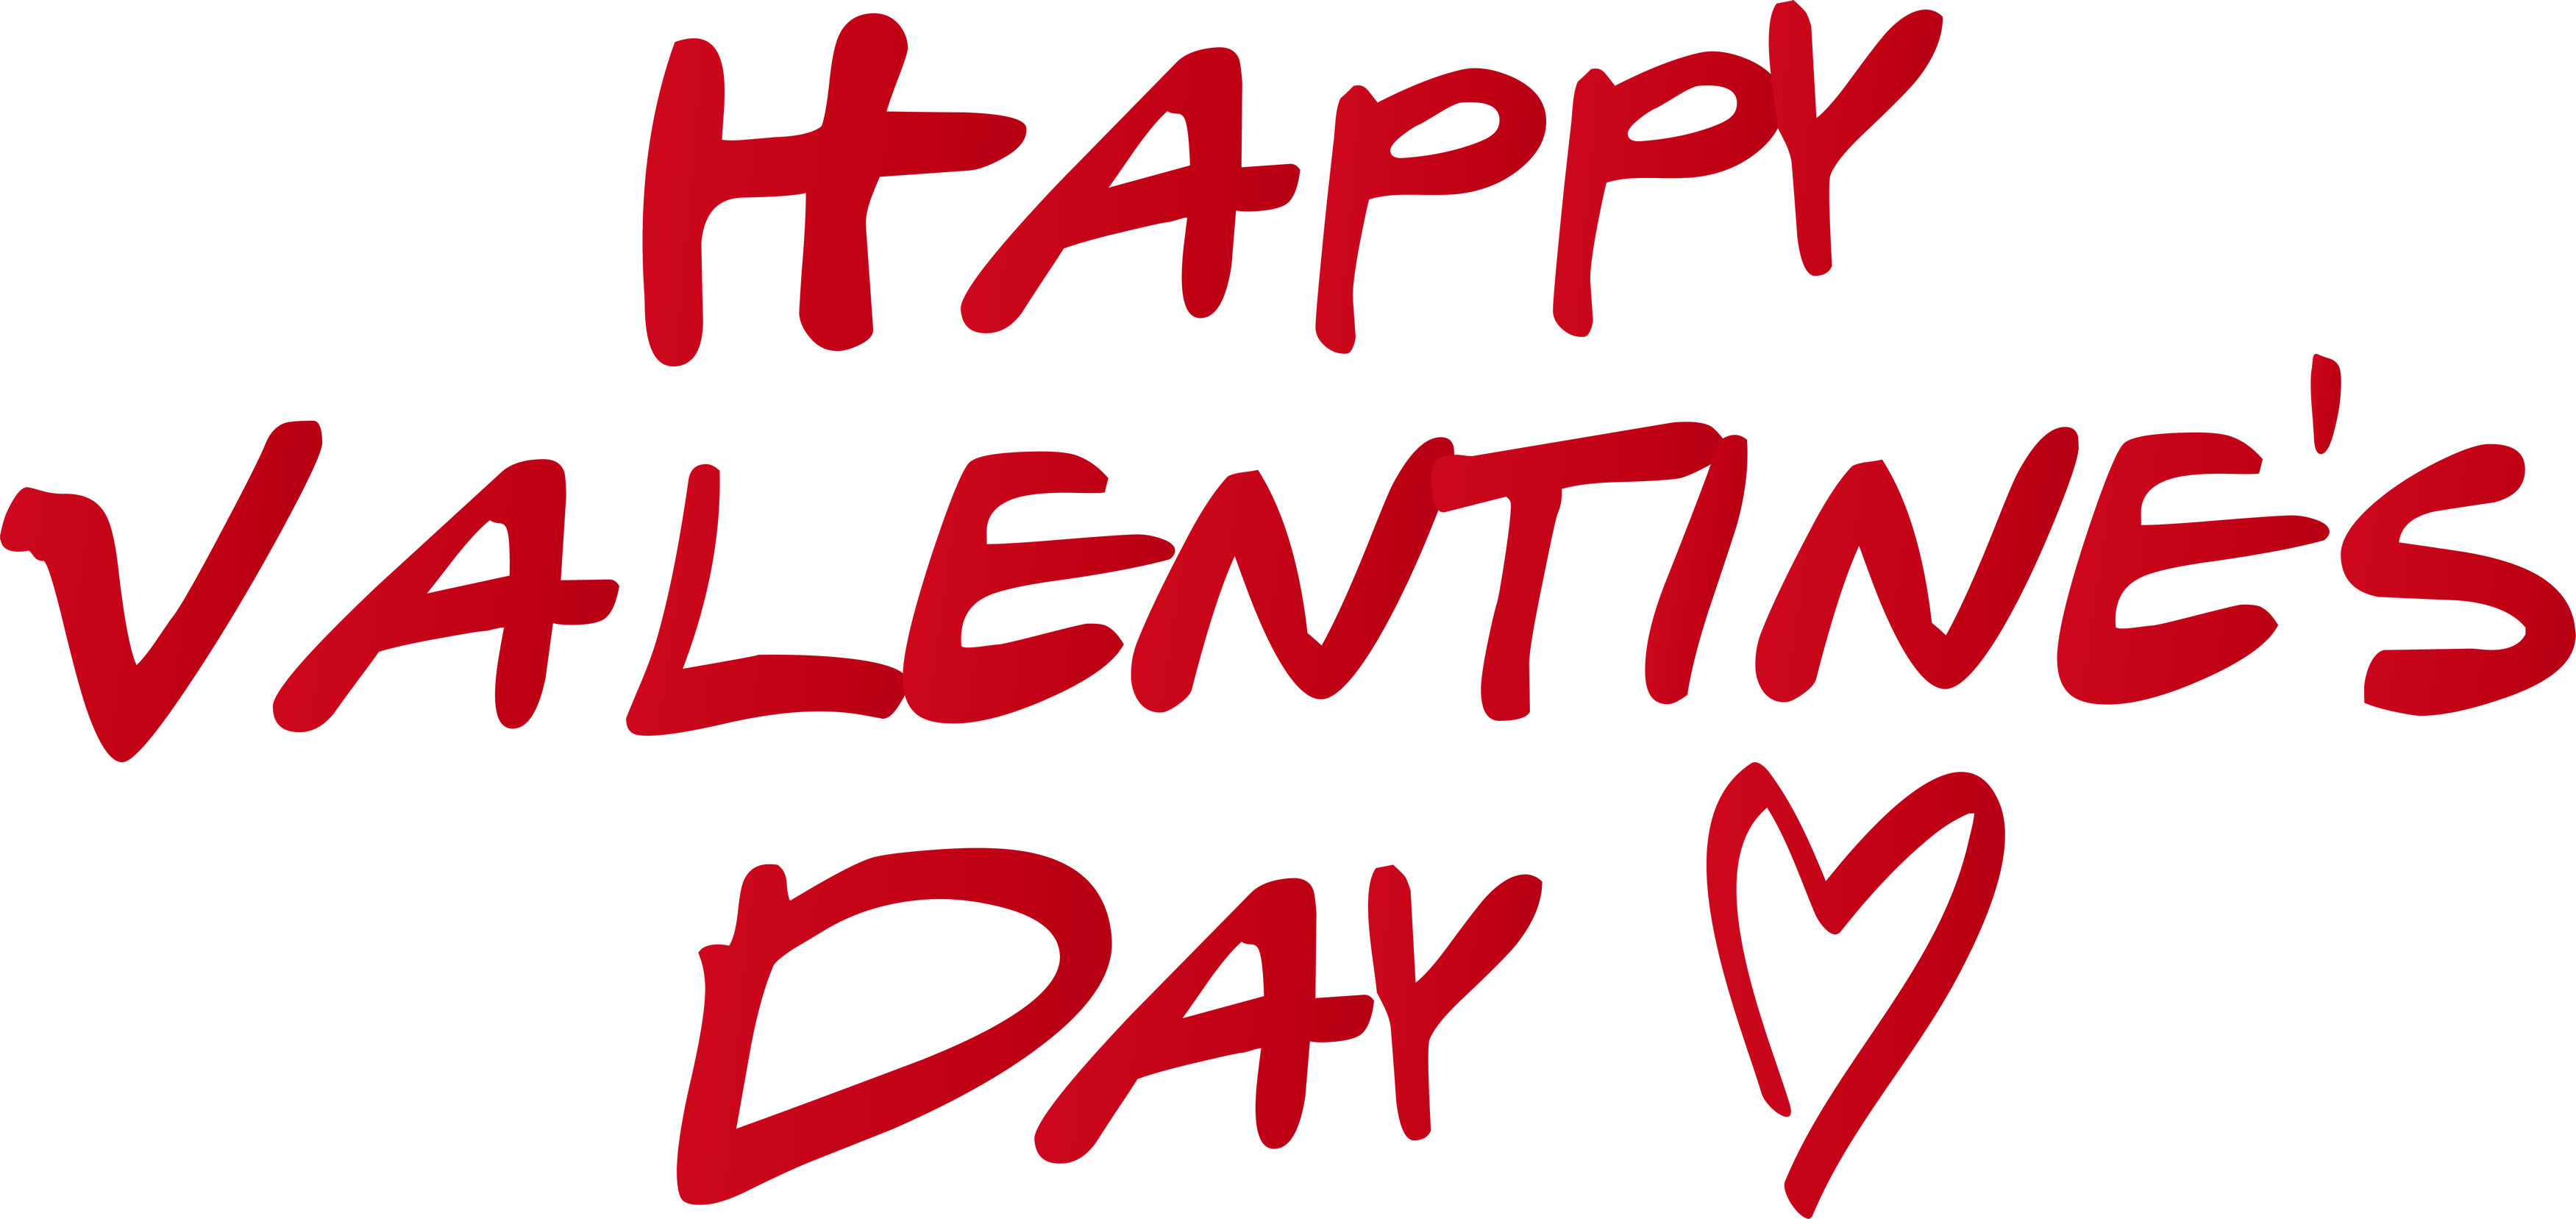 Happy Valentines Day Png Image Download